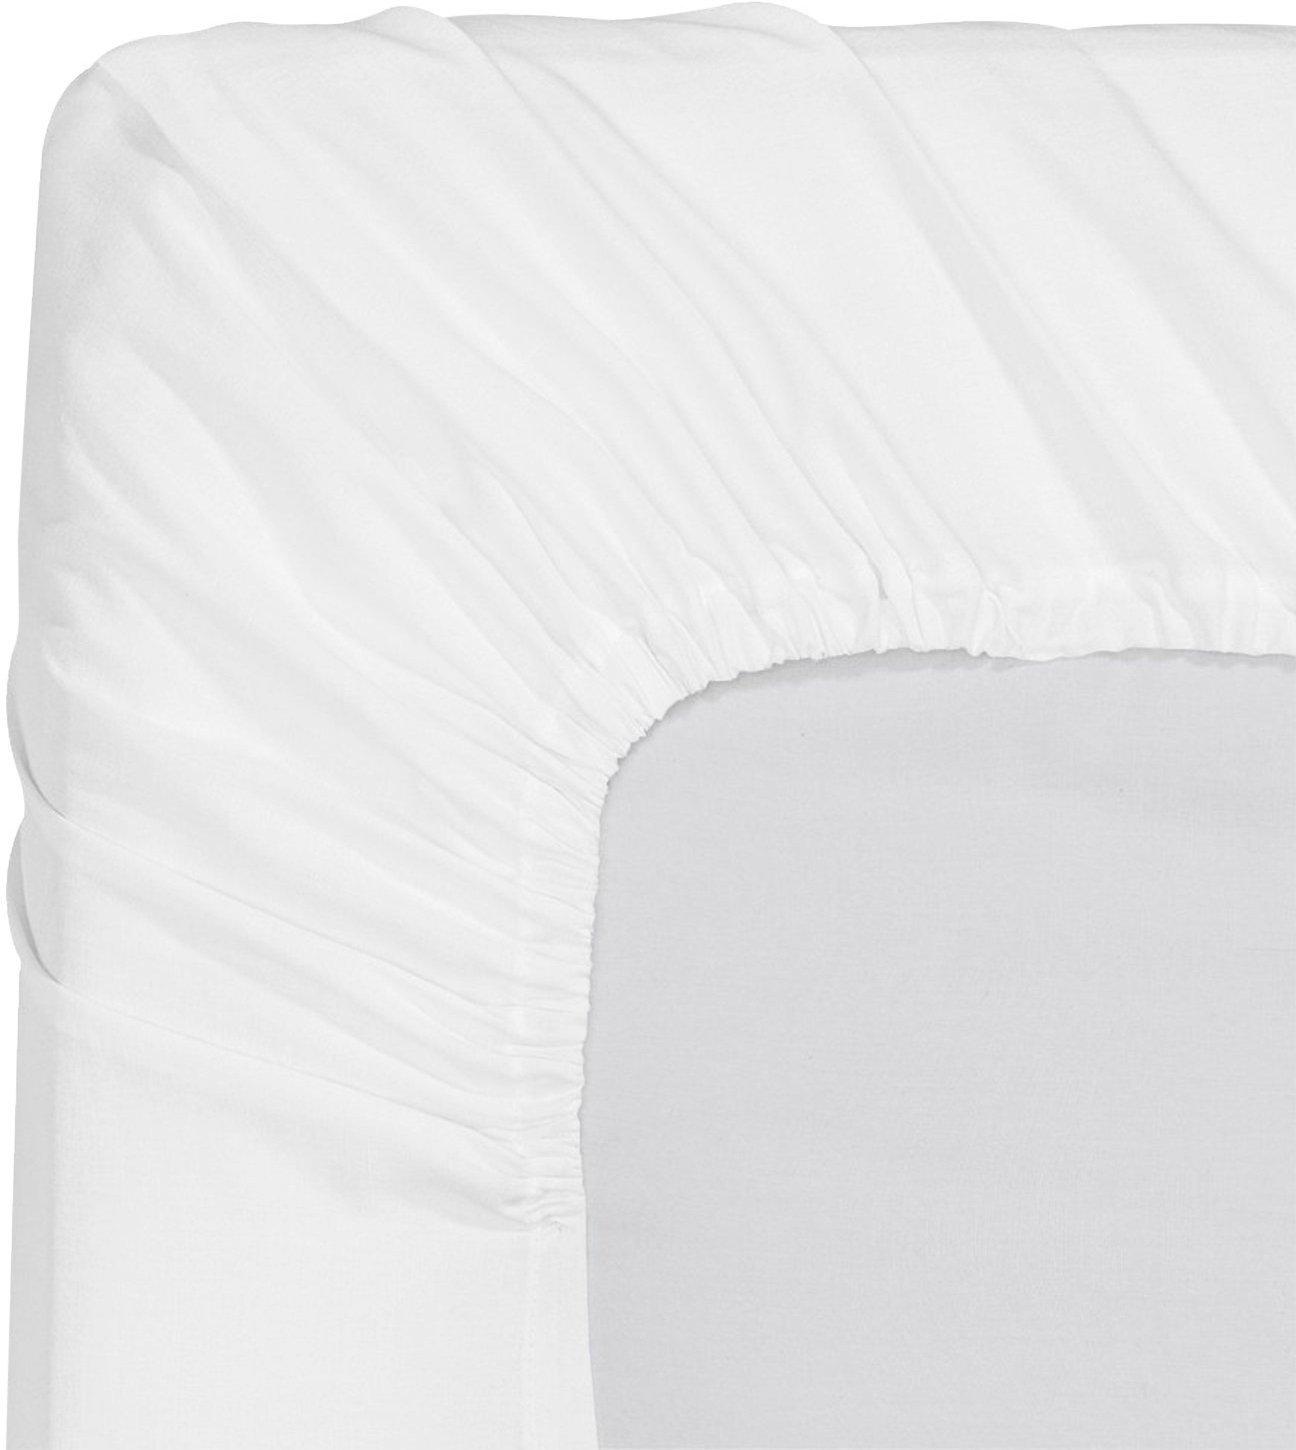 Utopia Bedding Premium Cotton Fitted Sheet Thread Count 300 (Twin, White) – 100% Combed Cotton Sateen - Super Soft Mercerized Fabric - Machine Washable